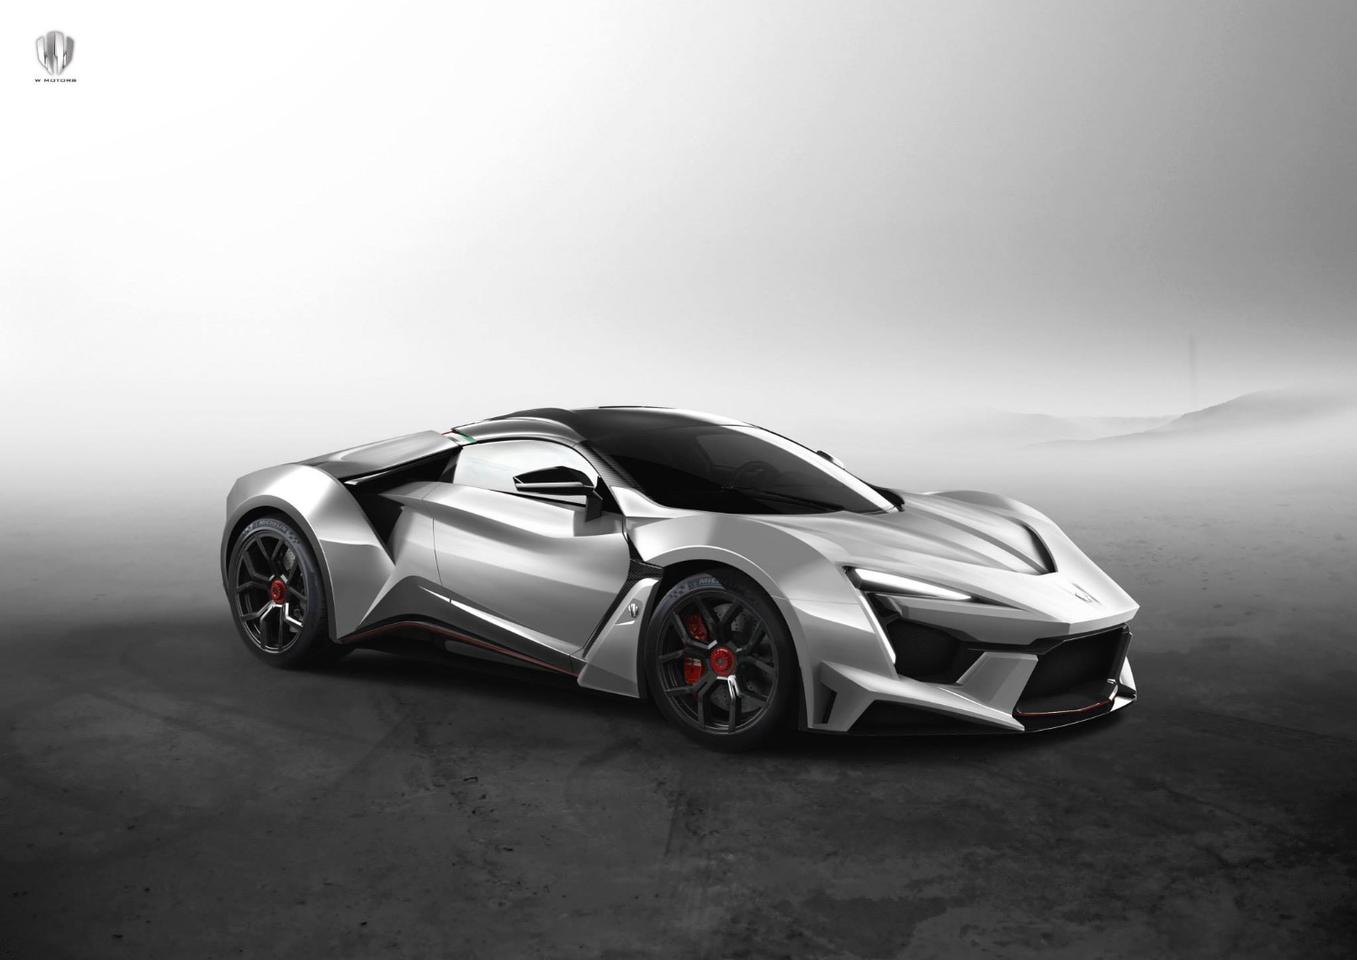 The all-new Fenyr Supersport marries a 900-hp twin-turbo flat-six with an extreme look